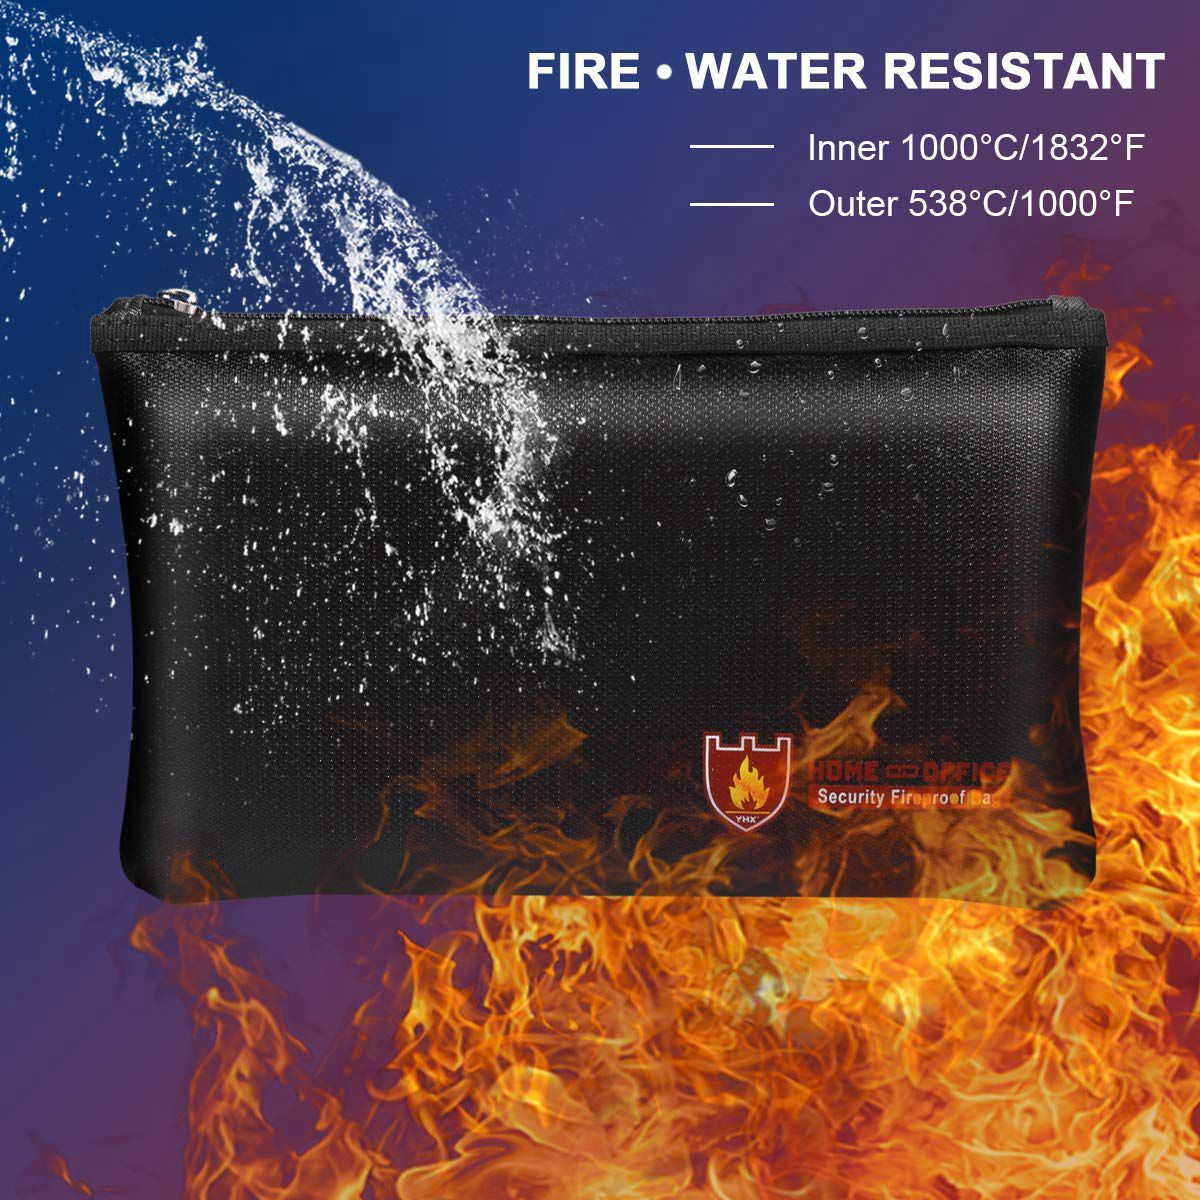 fireproof document bag by floods